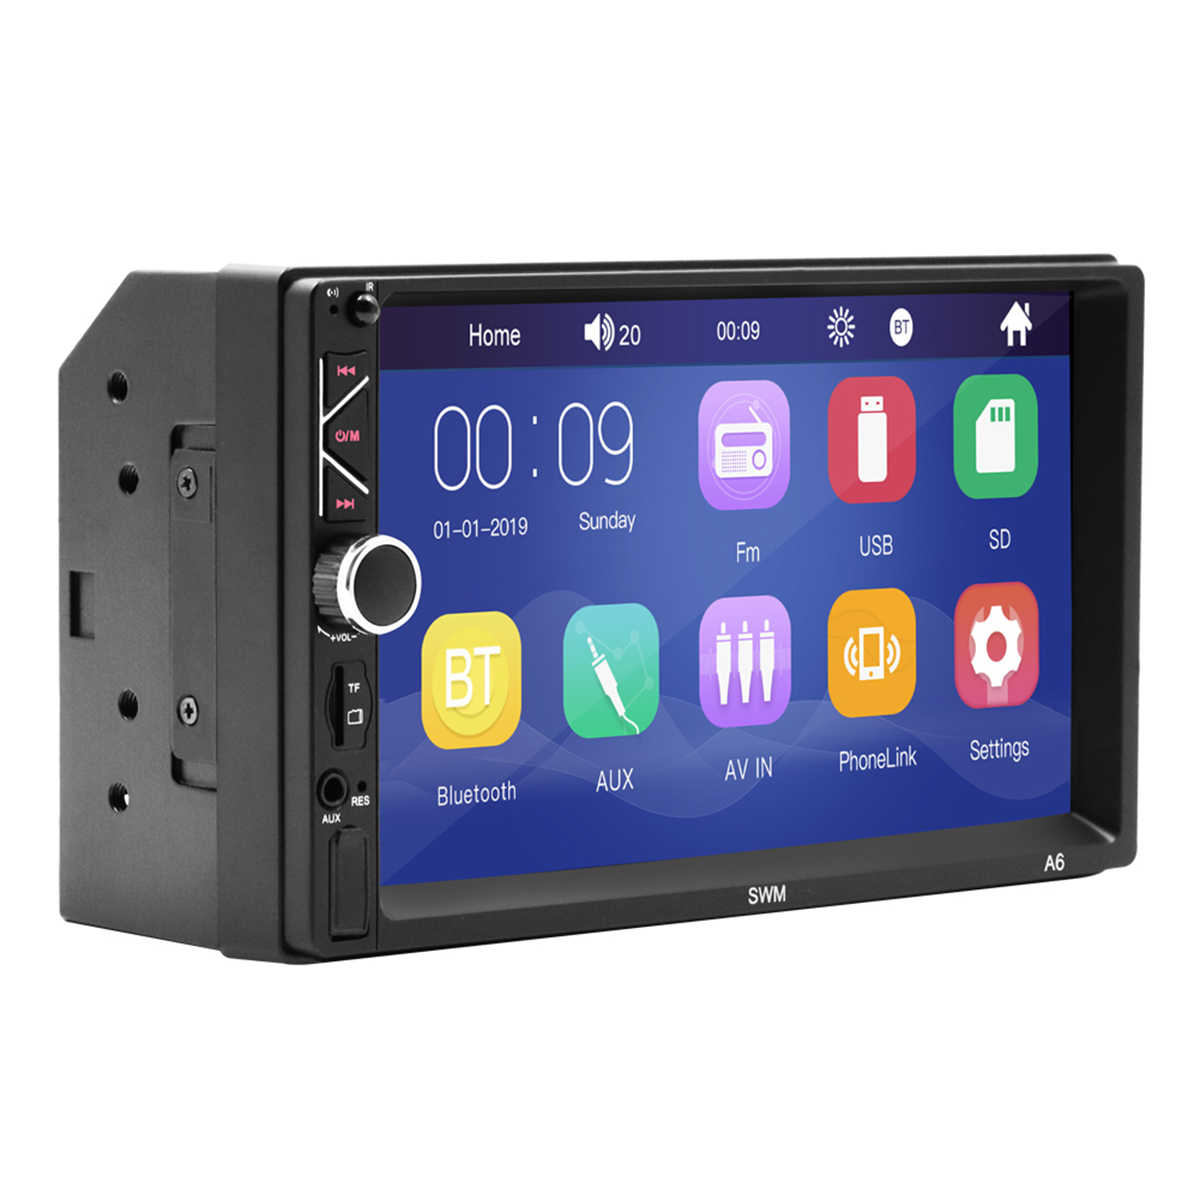 7inch 2 Din Touch Screen HD 87.5-108Mhz Autoradio usb-uitgang MP5 Speler TF/ USB/AUX-in/Bluetooth Audio Video Player